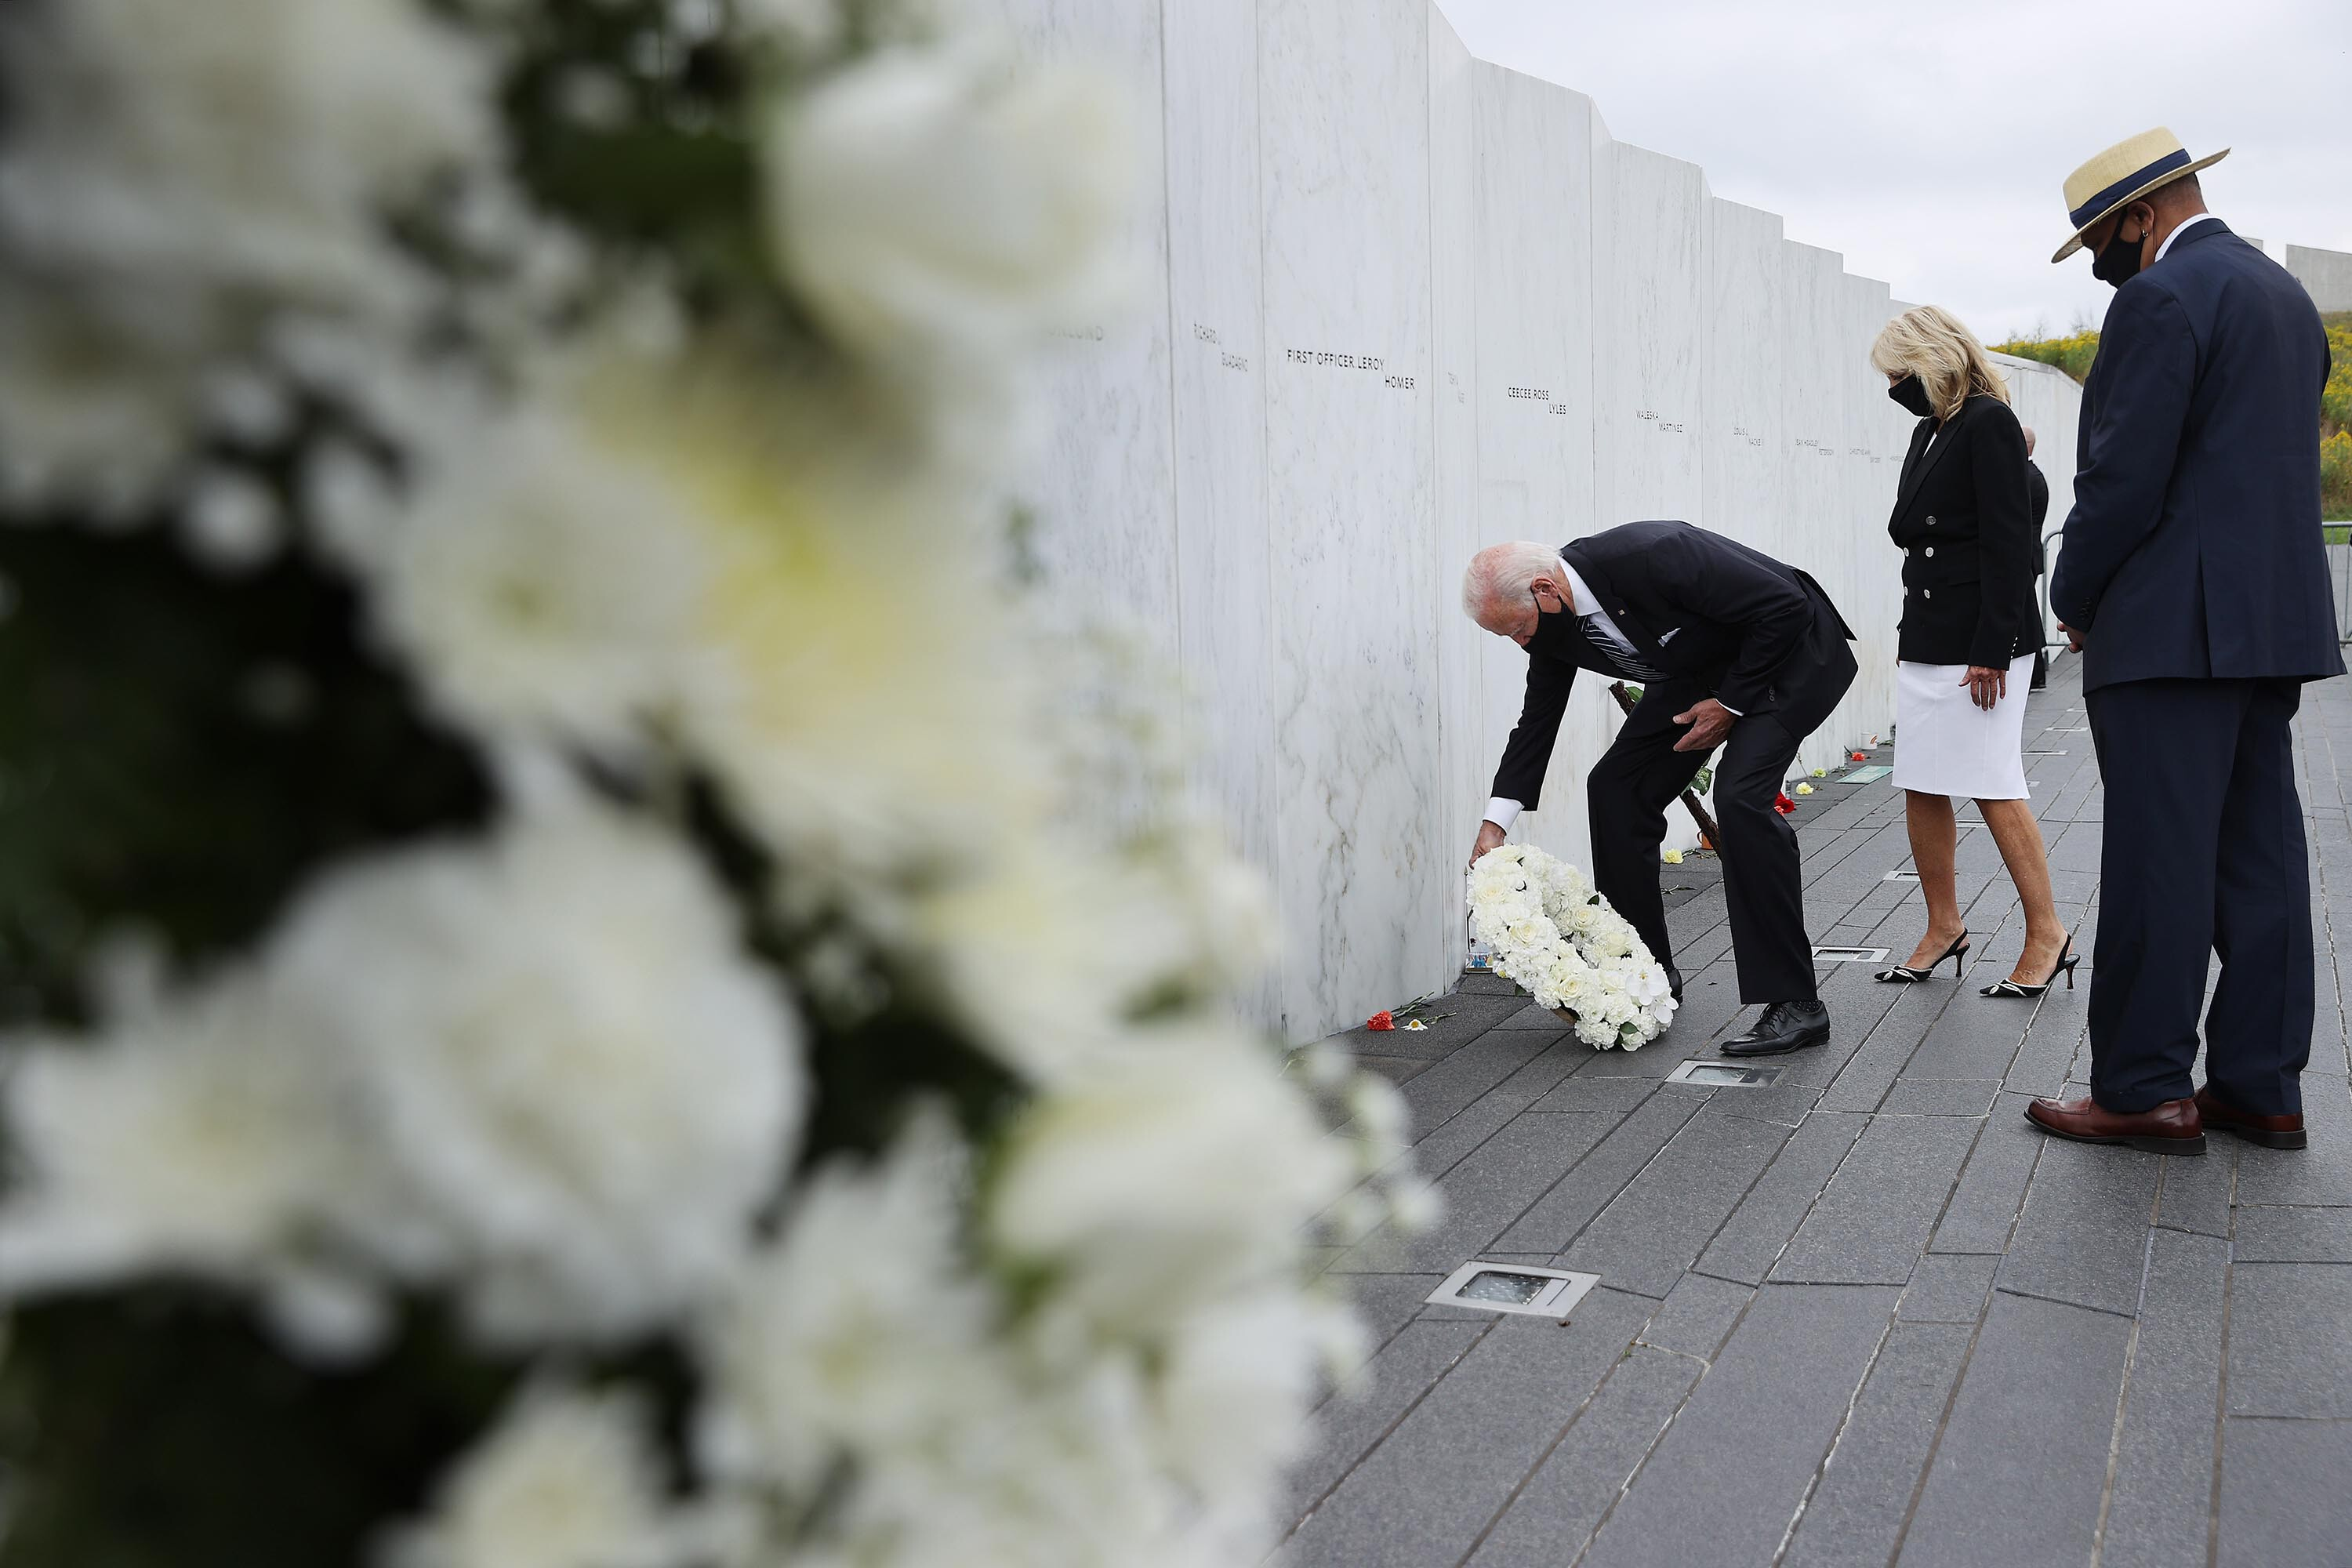 9/11 families tell Biden to stay away from memorial service if he doesn't authorize release of records related to attacks